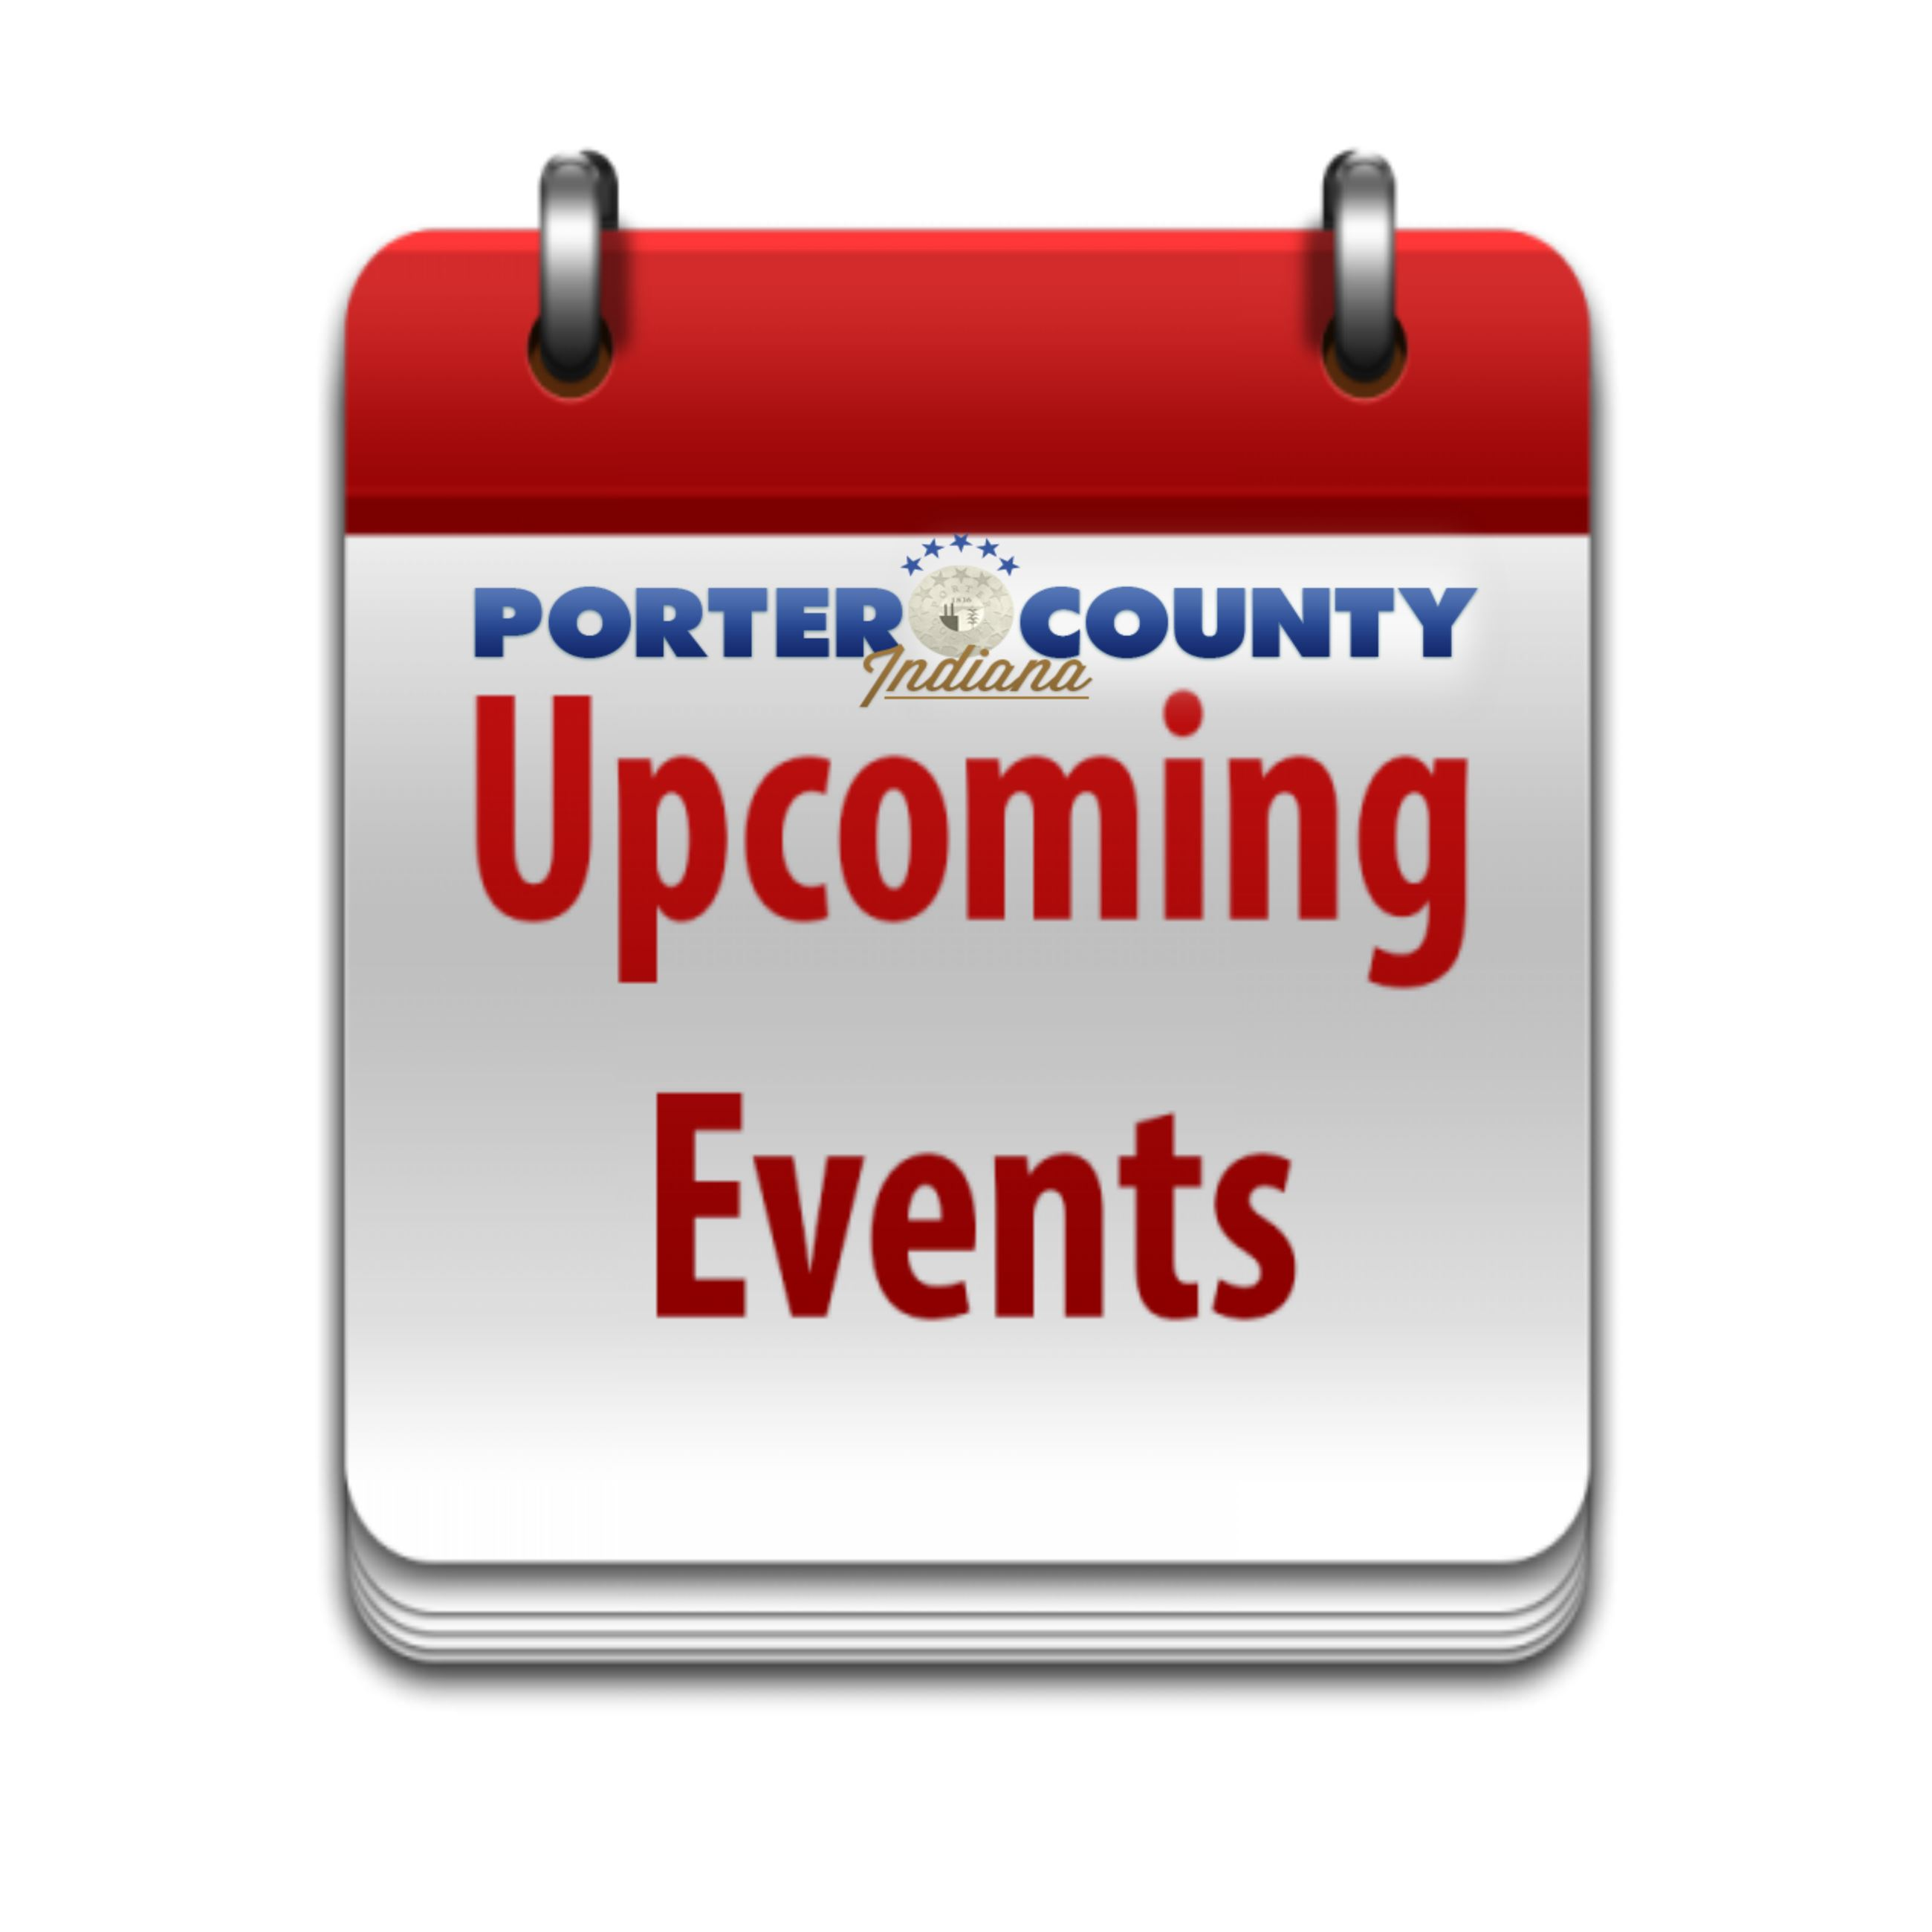 CLICK HERE To Learn About Upcoming Festivals & Events In Porter County